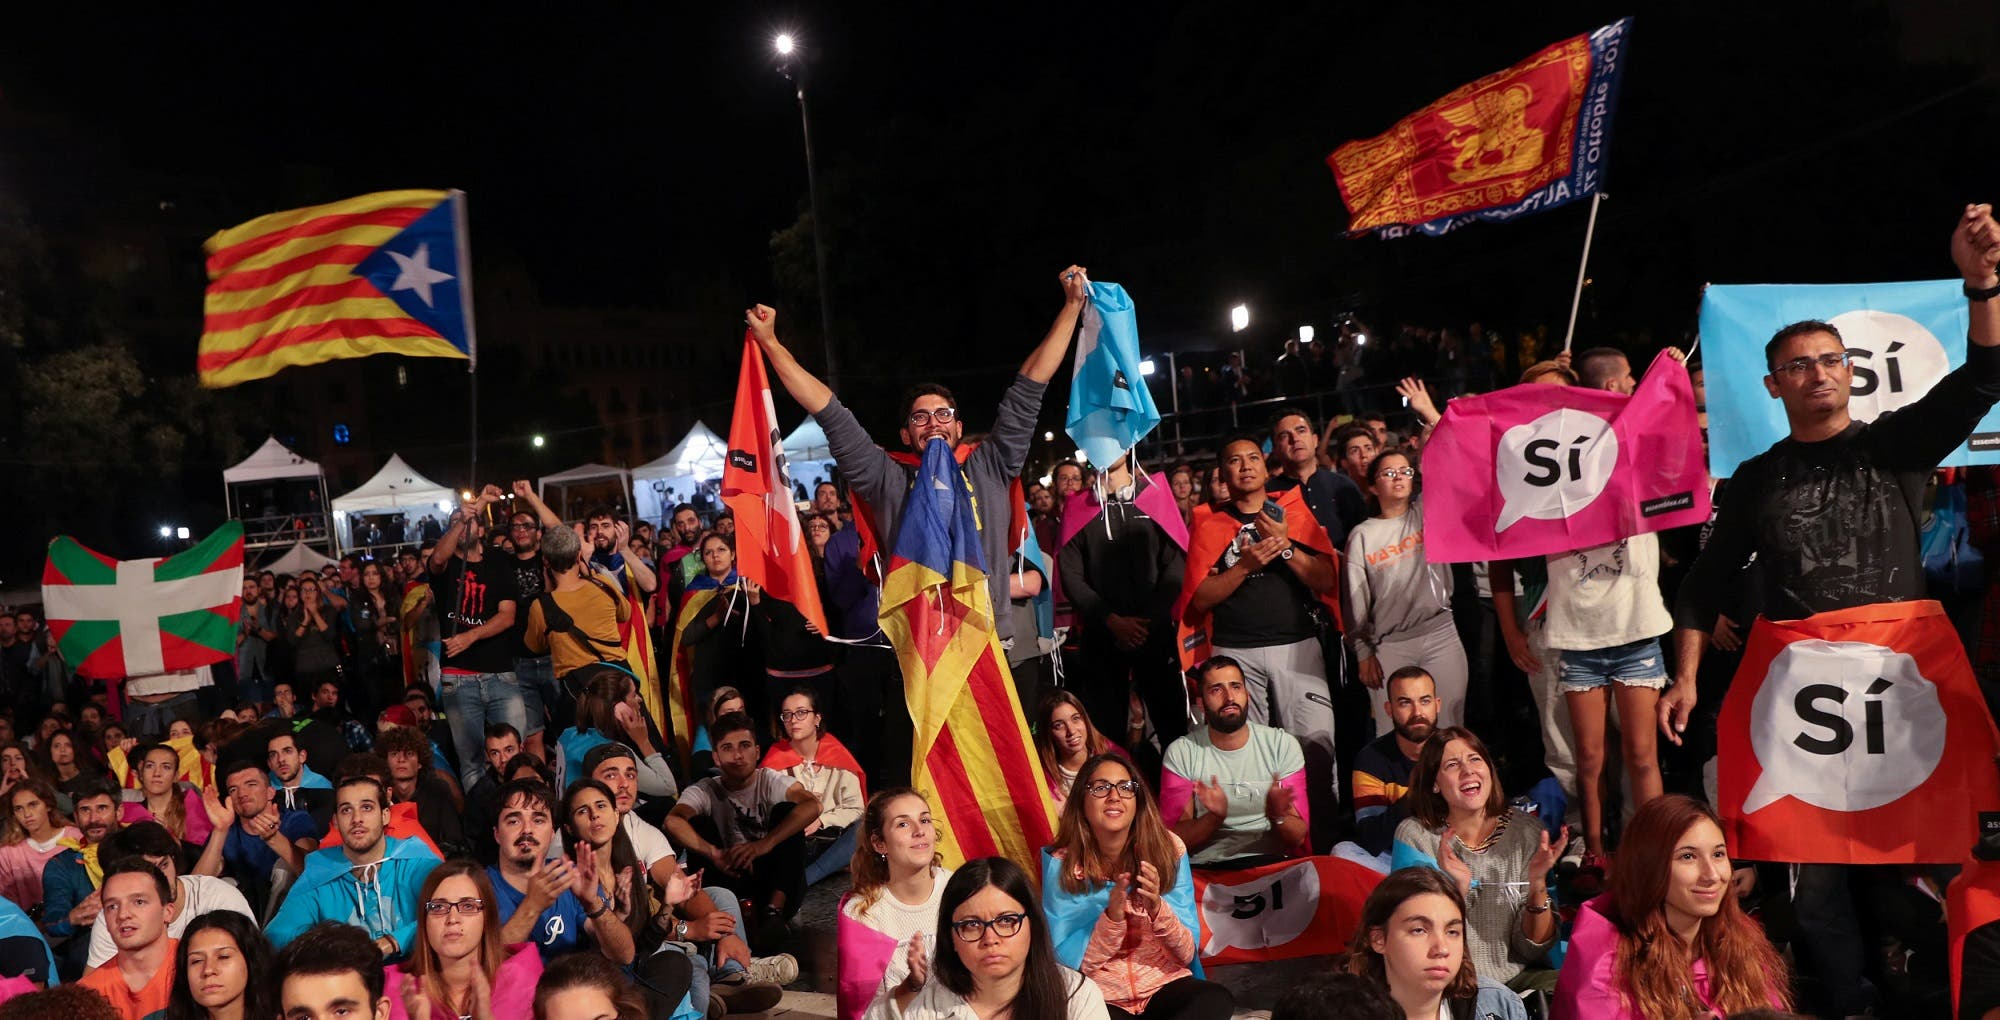 People react as they gather at Plaza Catalunya after voting ended for the banned independence referendum, in Barcelona, Spain, October 1, 2017. (Reuters)